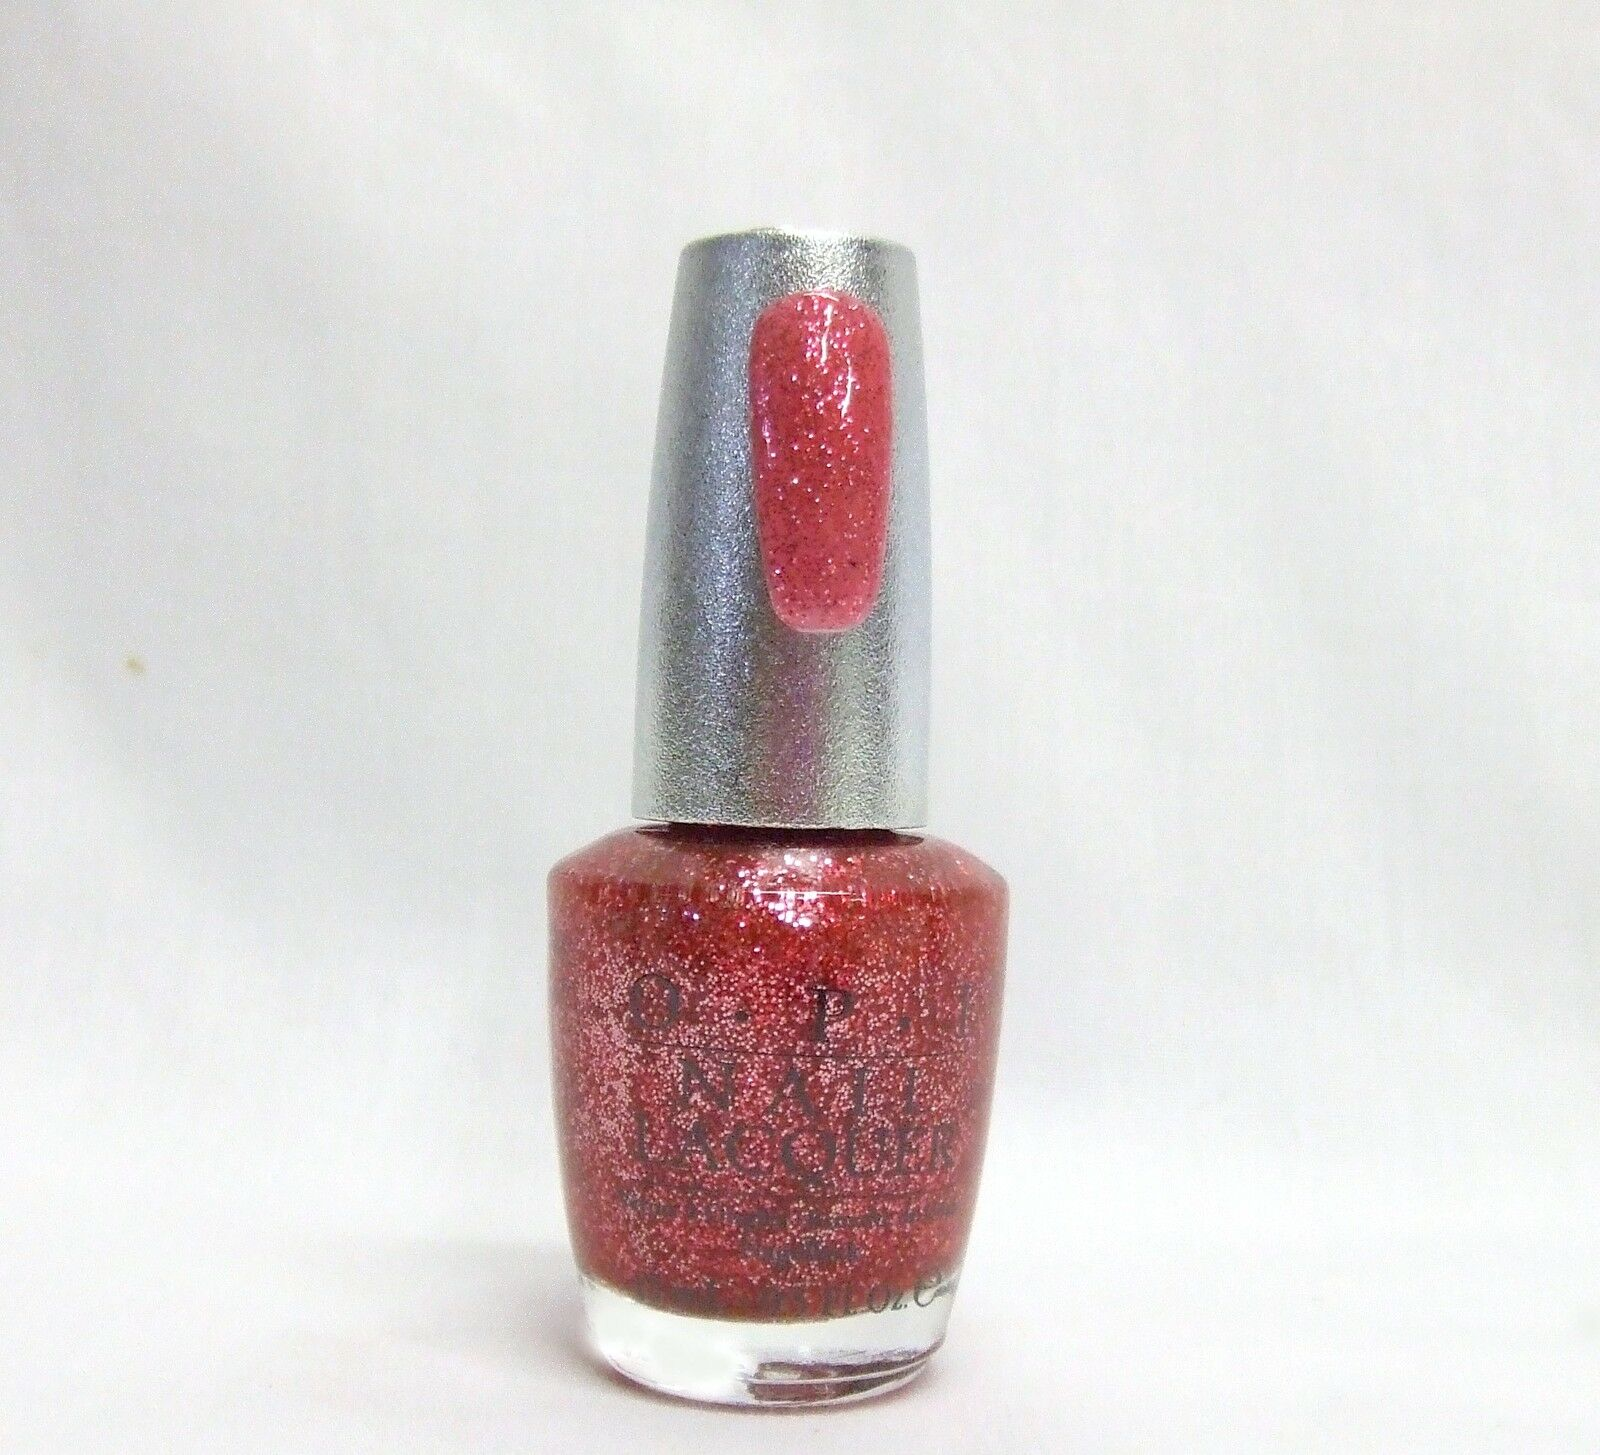 Opi nail polish designer series red glitter bold ds41 ebay picture 1 of 1 prinsesfo Image collections